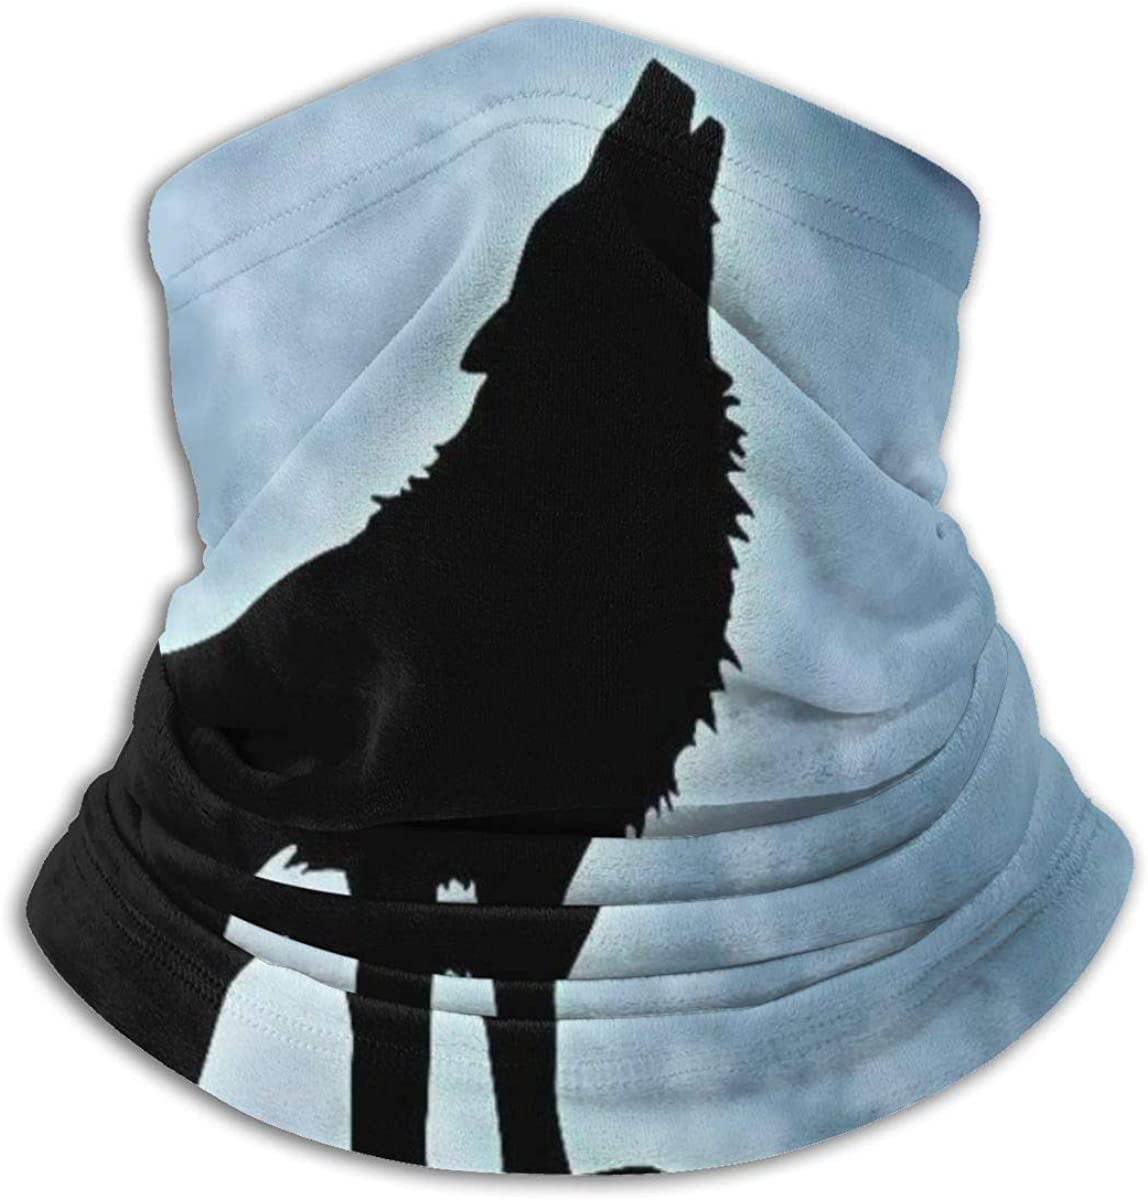 Howling Wolf Neck Gaiter Headwear Headband Head Wrap Scarf Mask Neck/Ear Warmers Headbands Perfect For Winter Fishing, Hiking, Running, Motorcycle Etc& Daily Wear For Men And Women